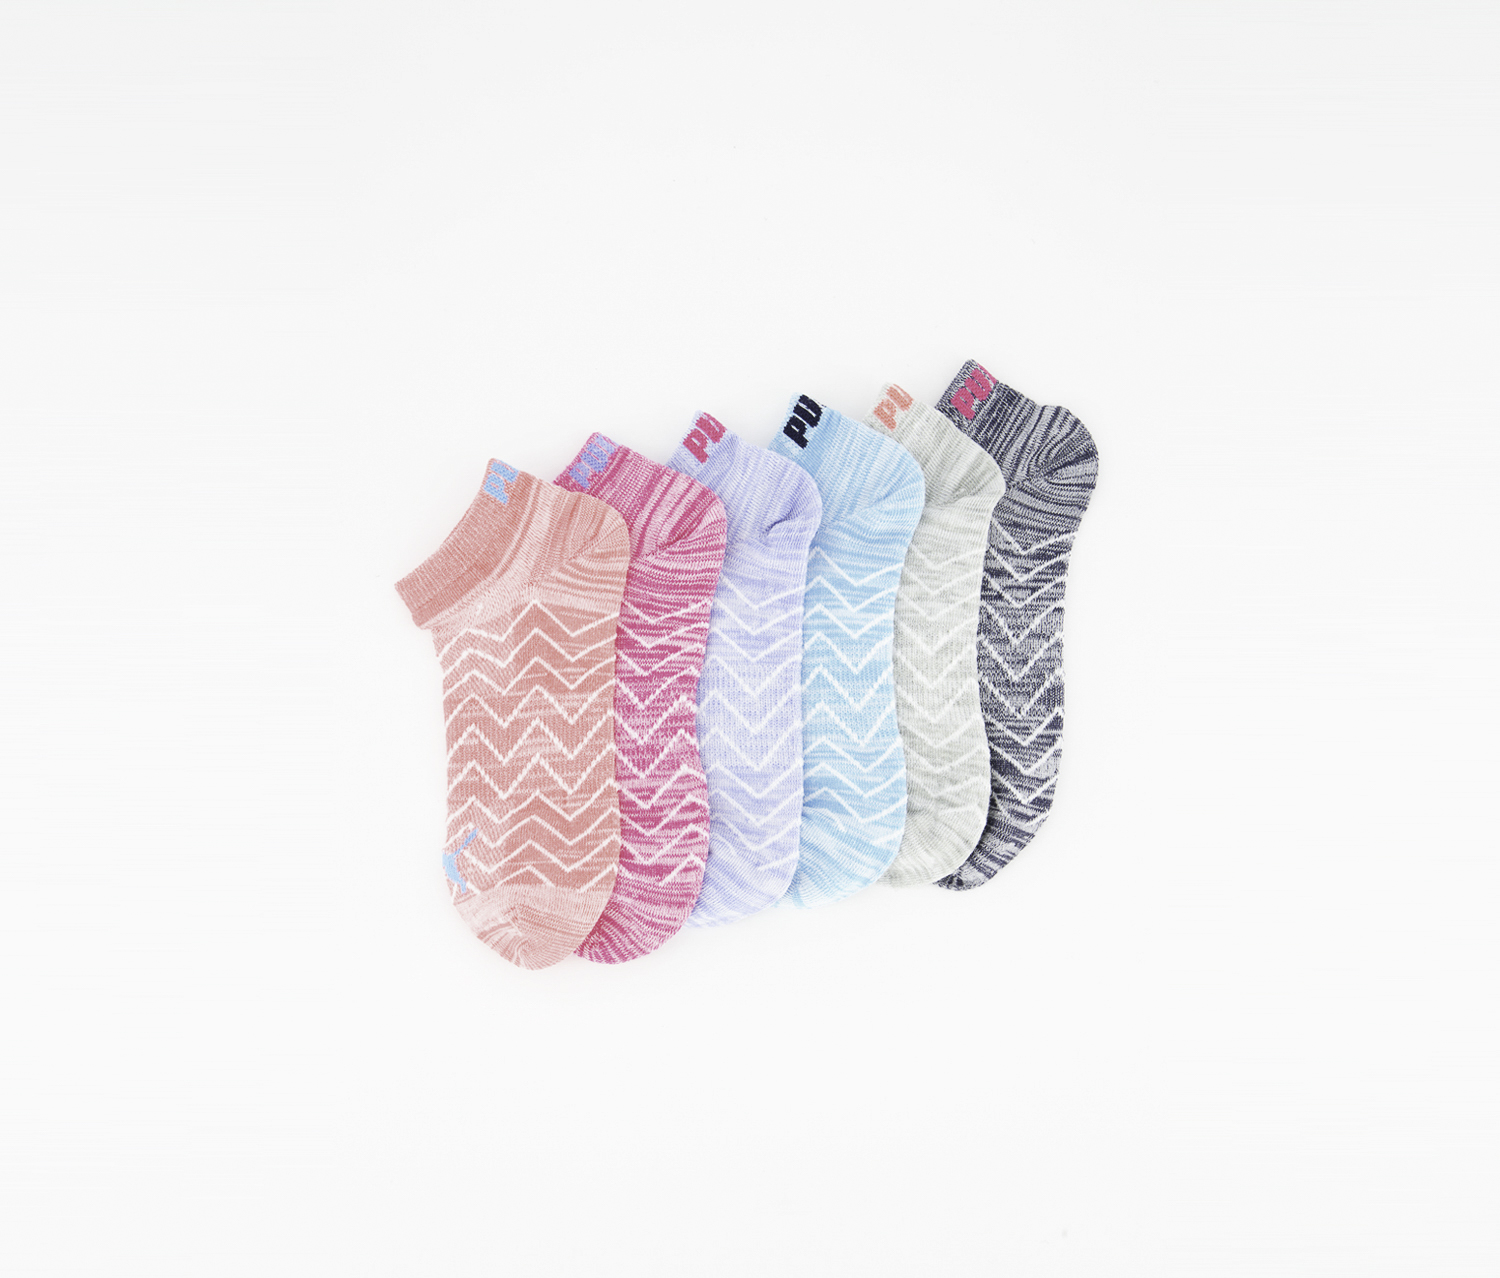 Girl's 6 Pair Low Cut Socks, Coral/Turquoise/Grey/Magenta/Light Blue